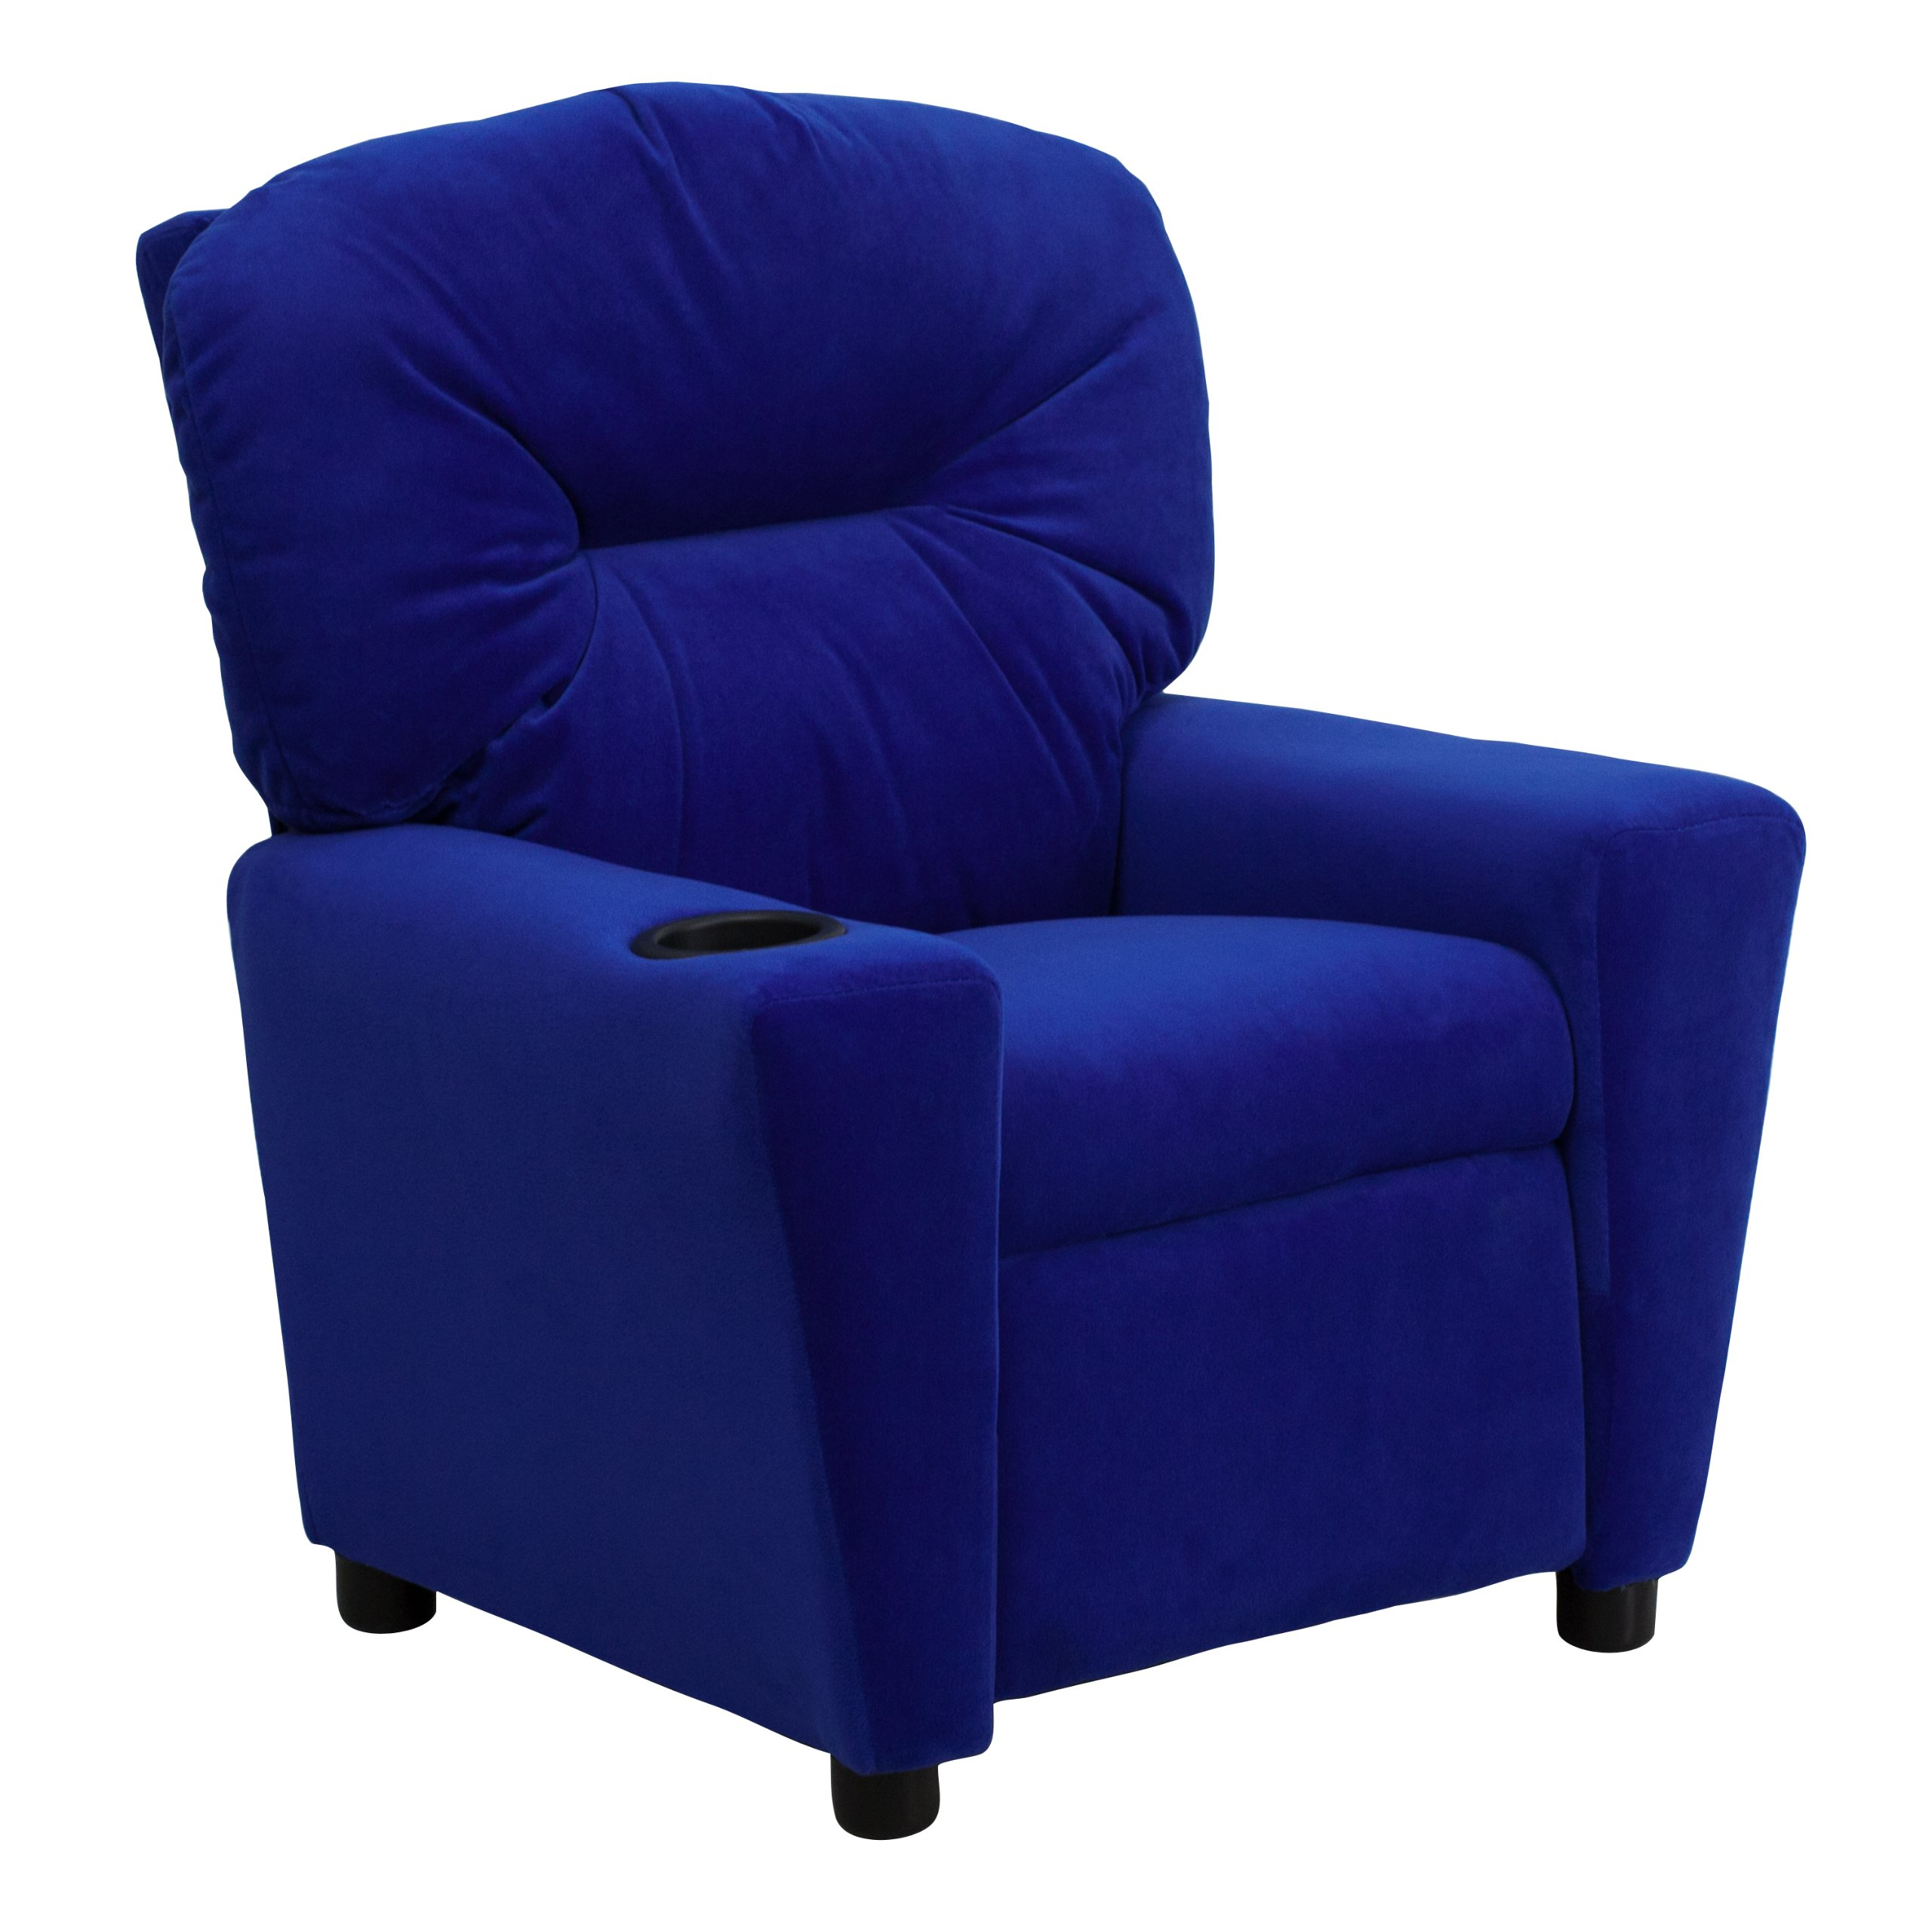 Winston Direct Kids' Series Contemporary Blue Microfiber Recliner with Cup Holder by Winston Direct